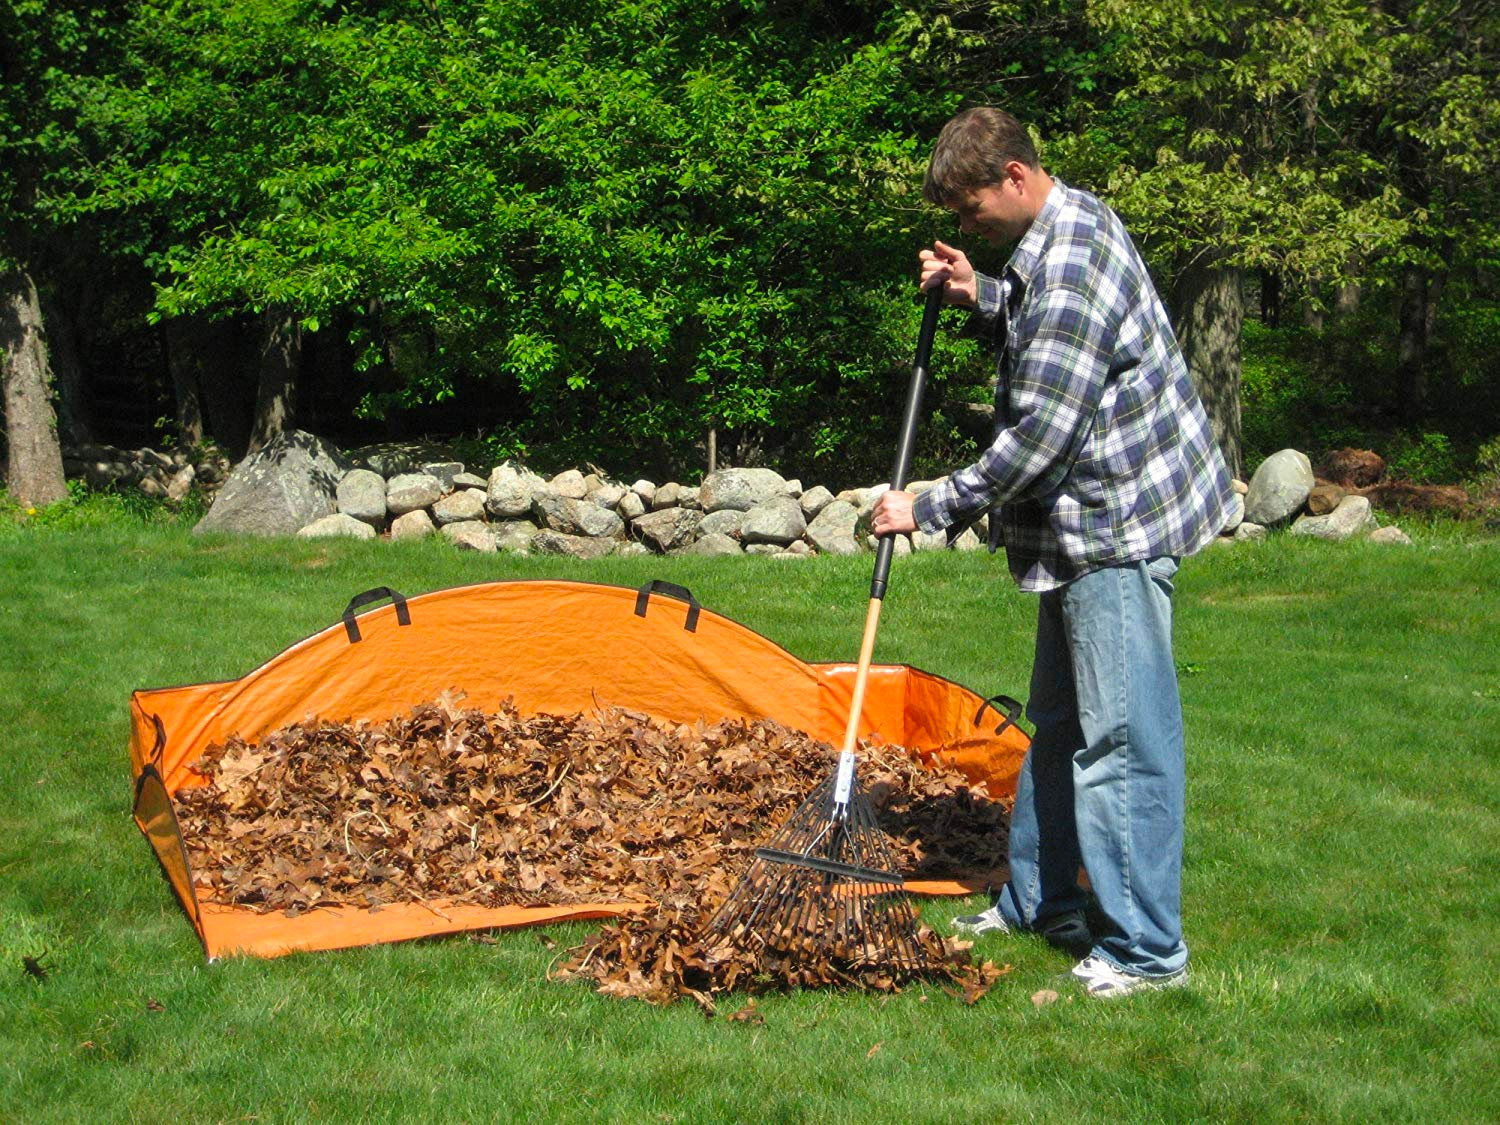 The Leaf Hauler Makes Fall Yard Work Fast & Easy at werd.com